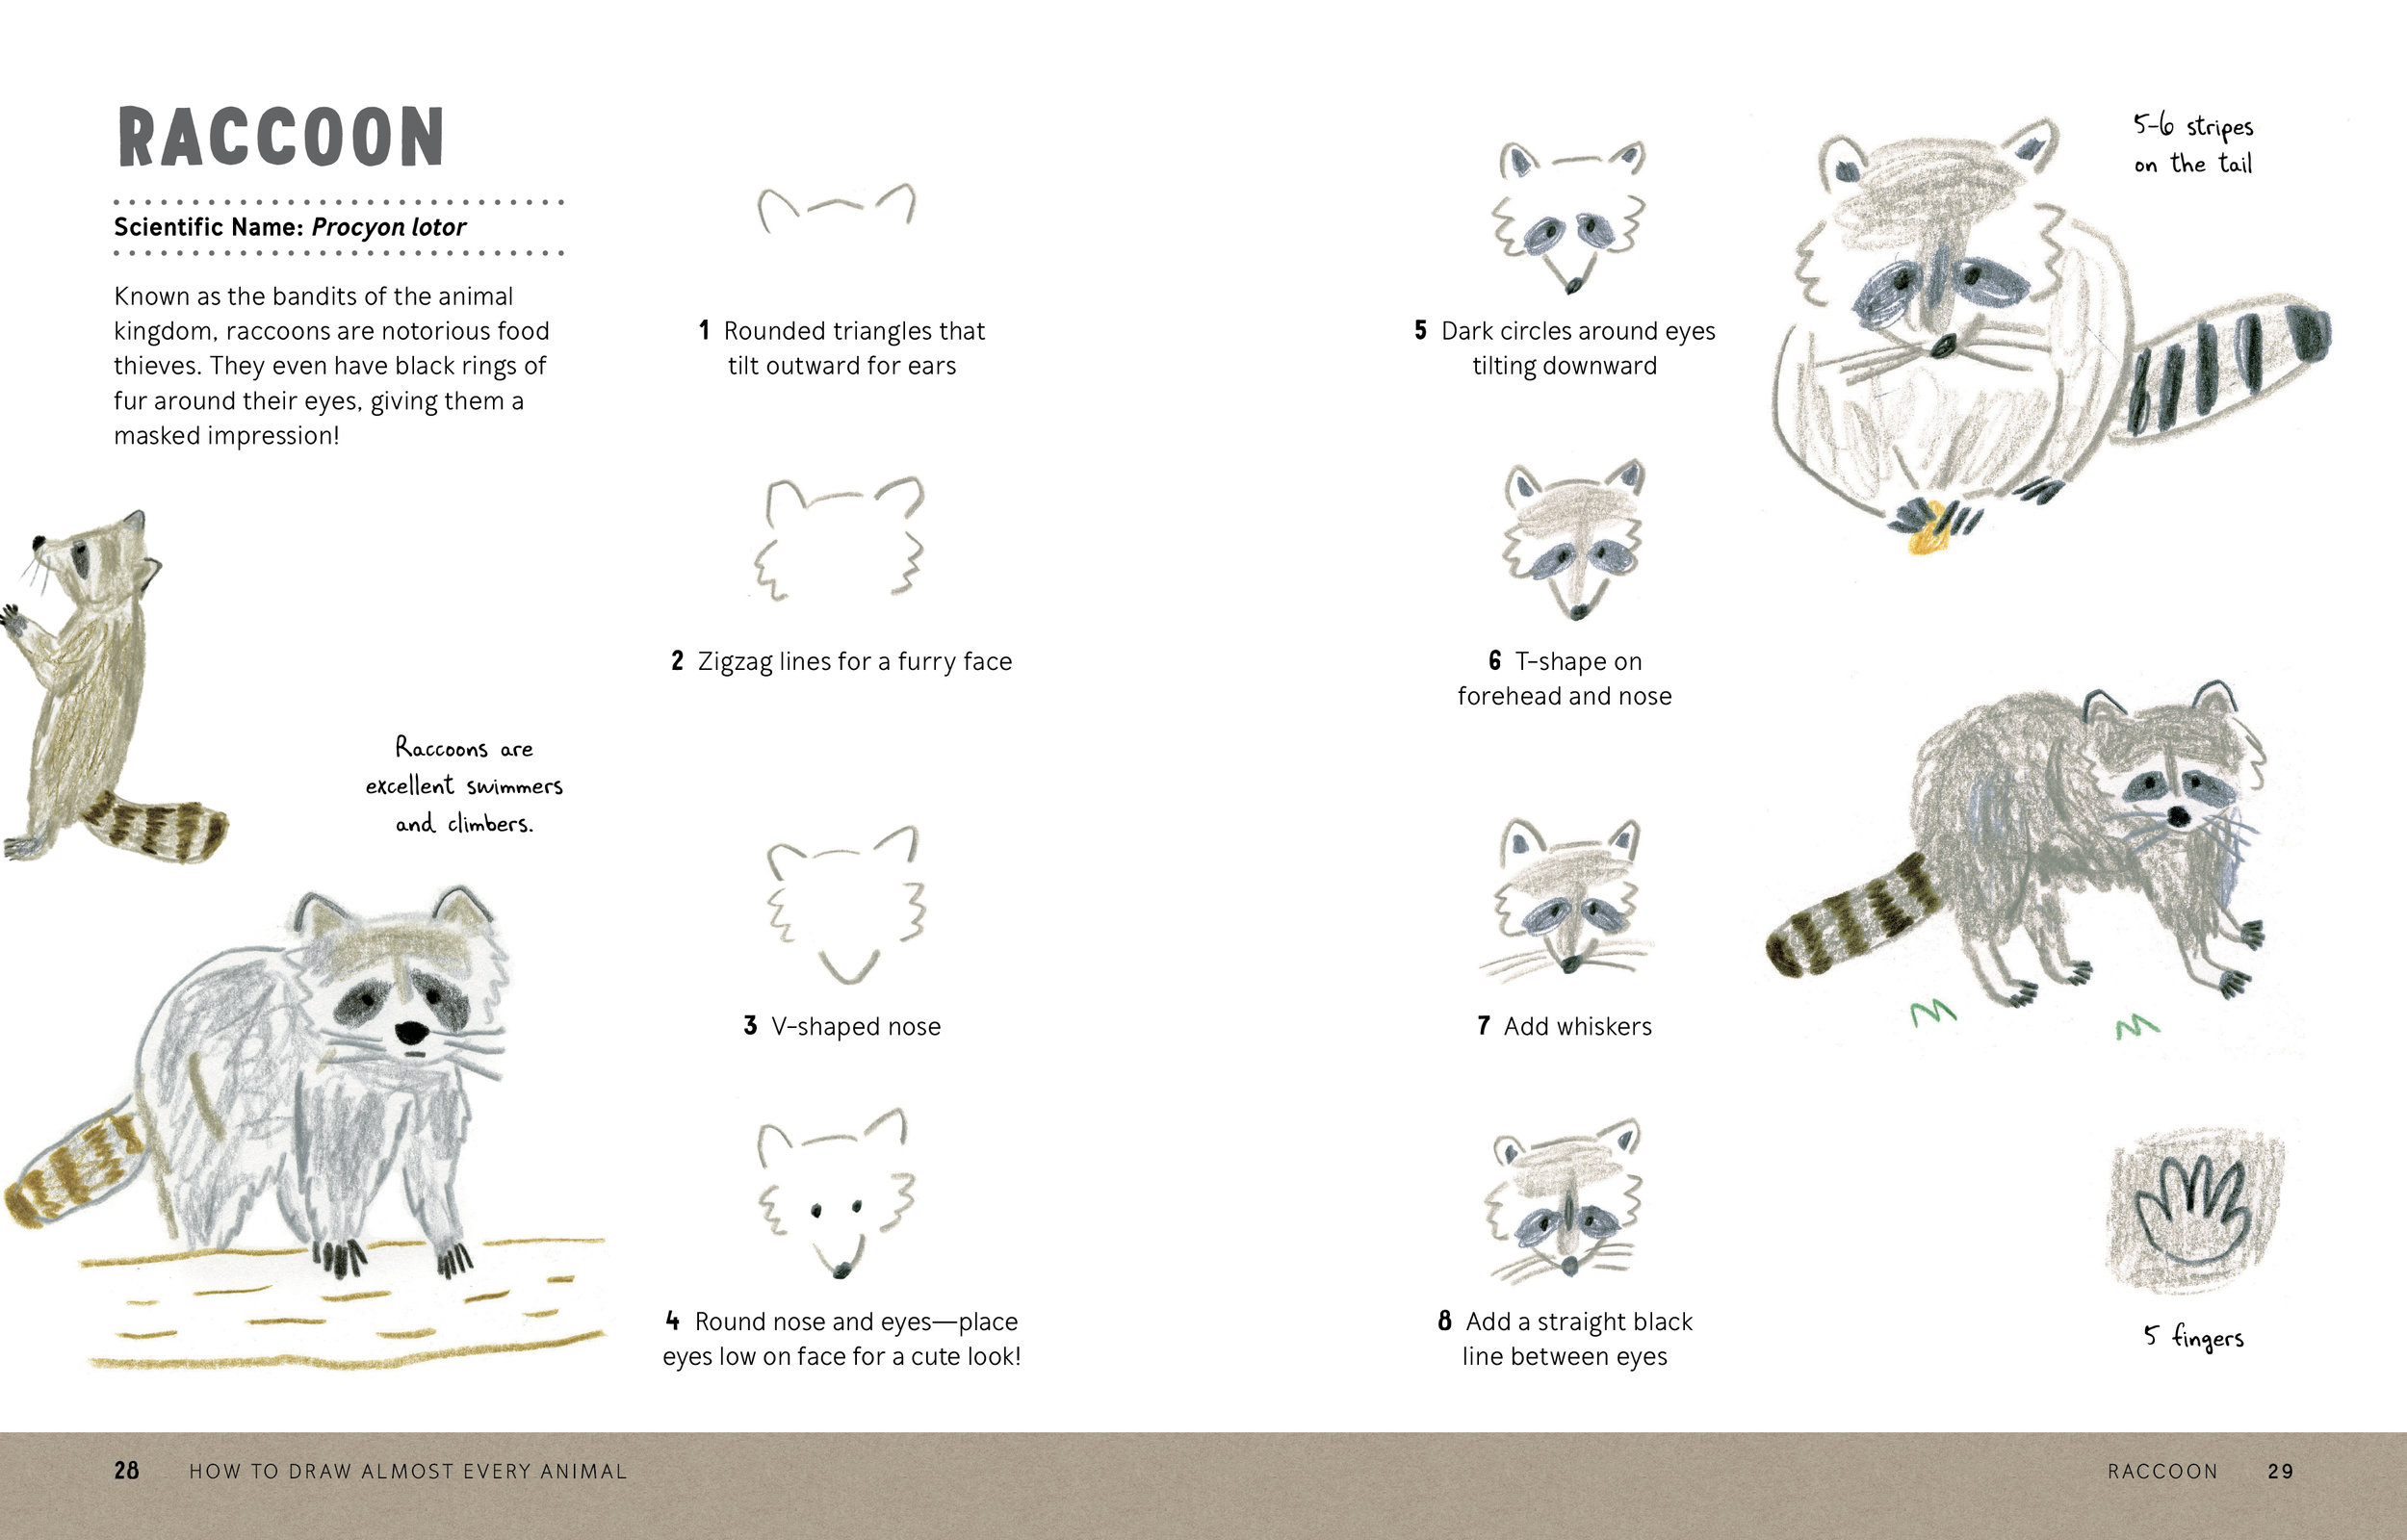 How to Draw Almost Every Animal 28.29.jpg